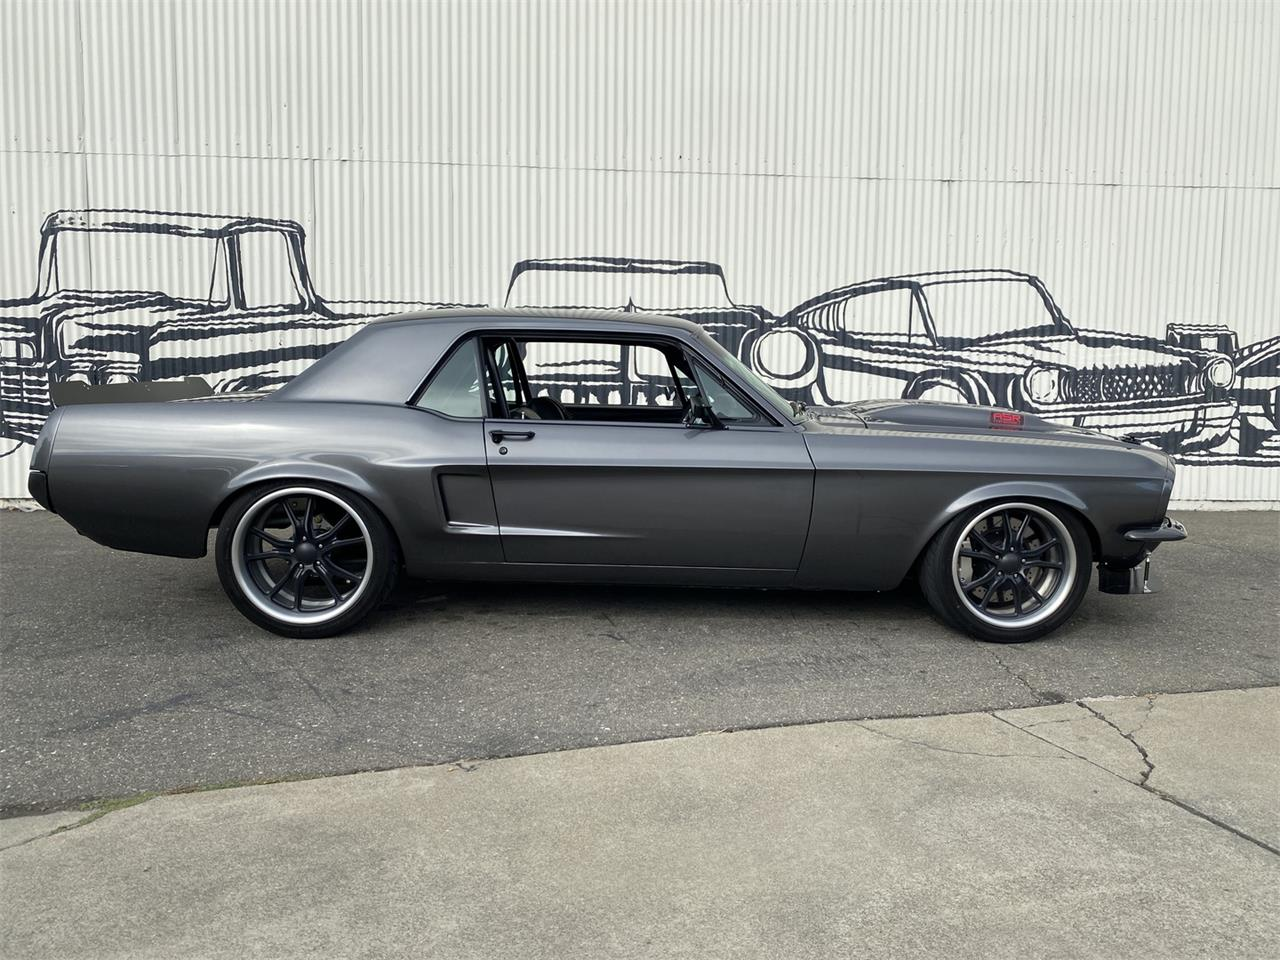 1967 Ford Mustang (CC-1414283) for sale in Fairfield, California